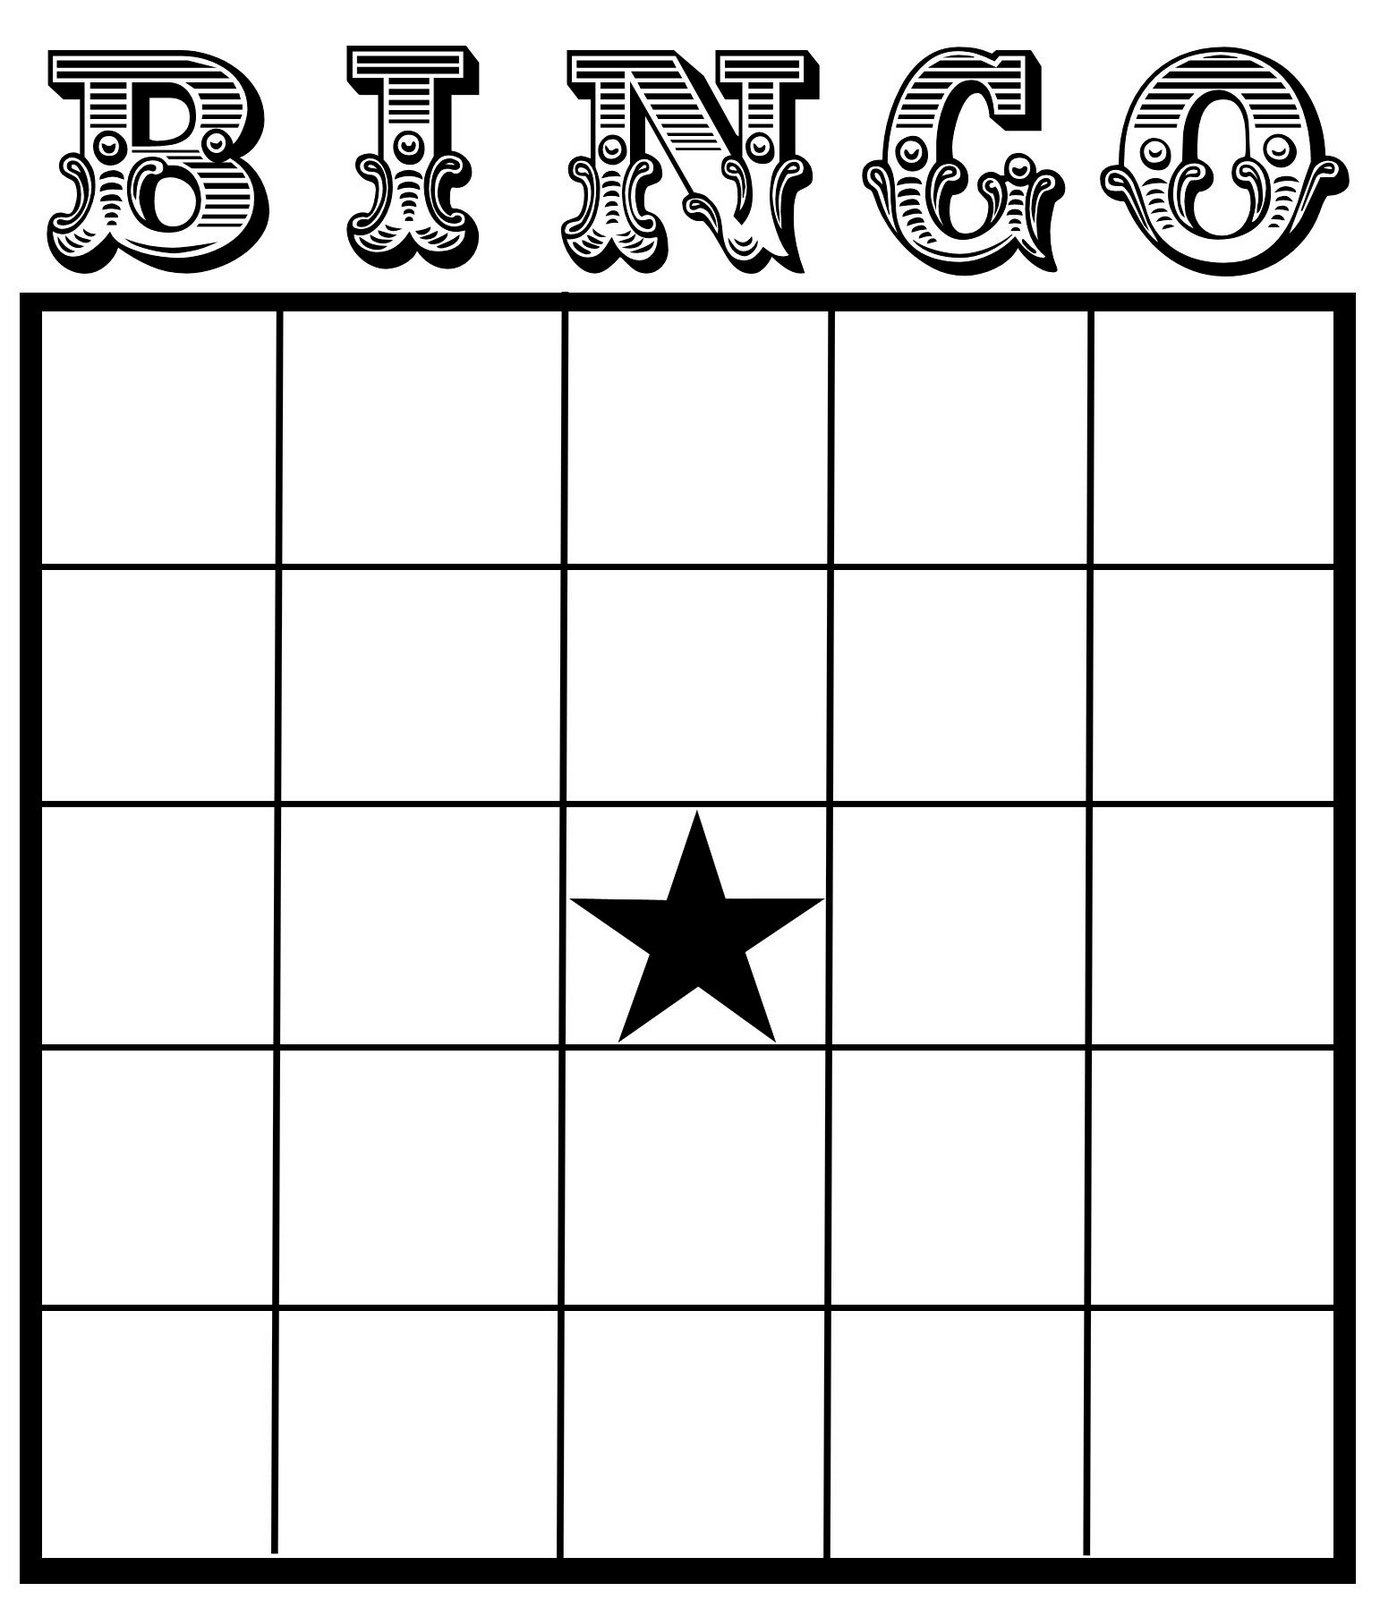 worksheet Bingo Worksheet christine zani bingo card printables to share share